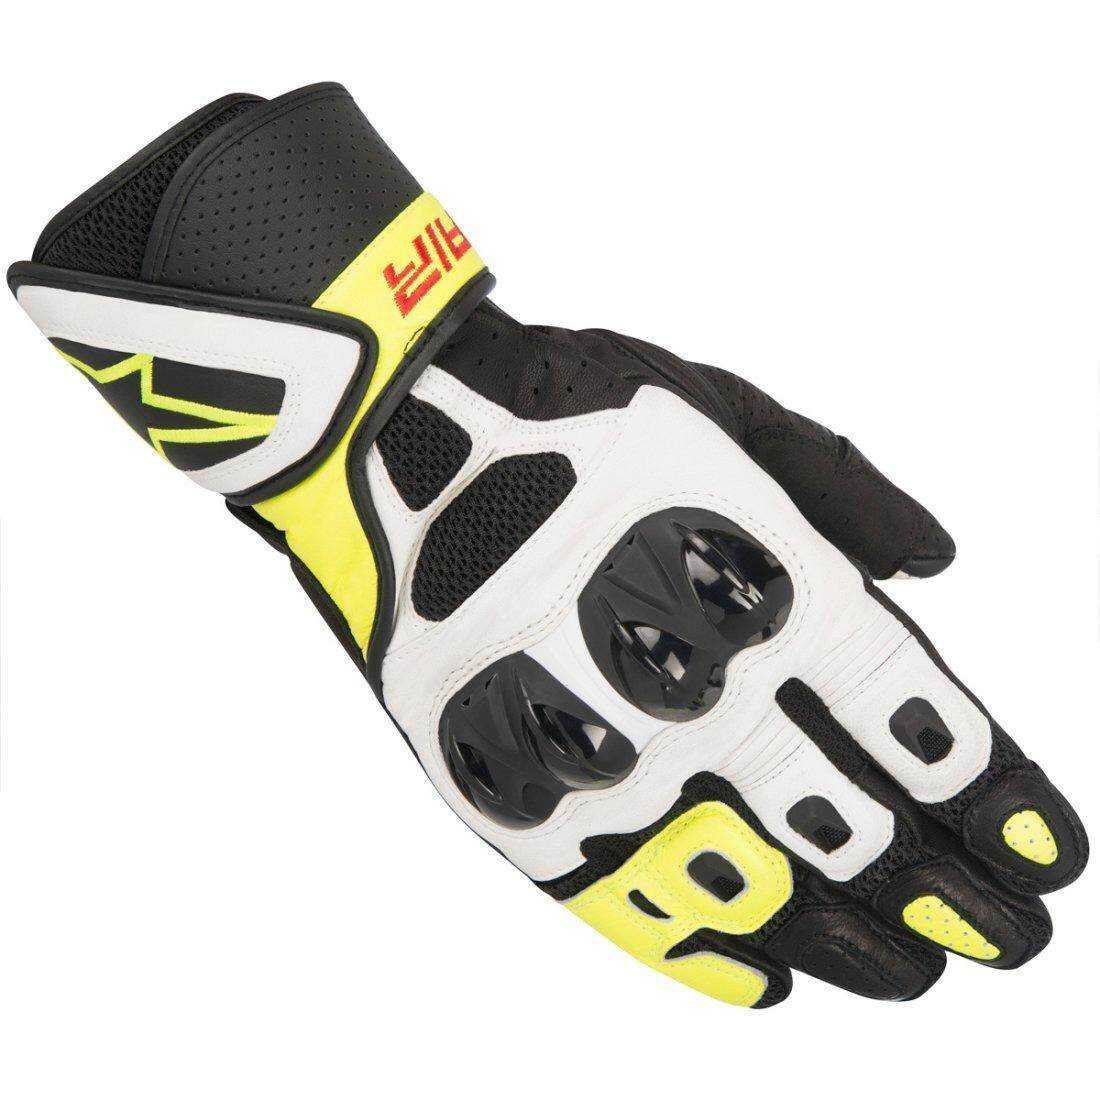 ALPINESTARS SP AIR GLOVE (YELLOW/BLACK/WHITE) - [ORIGINAL]